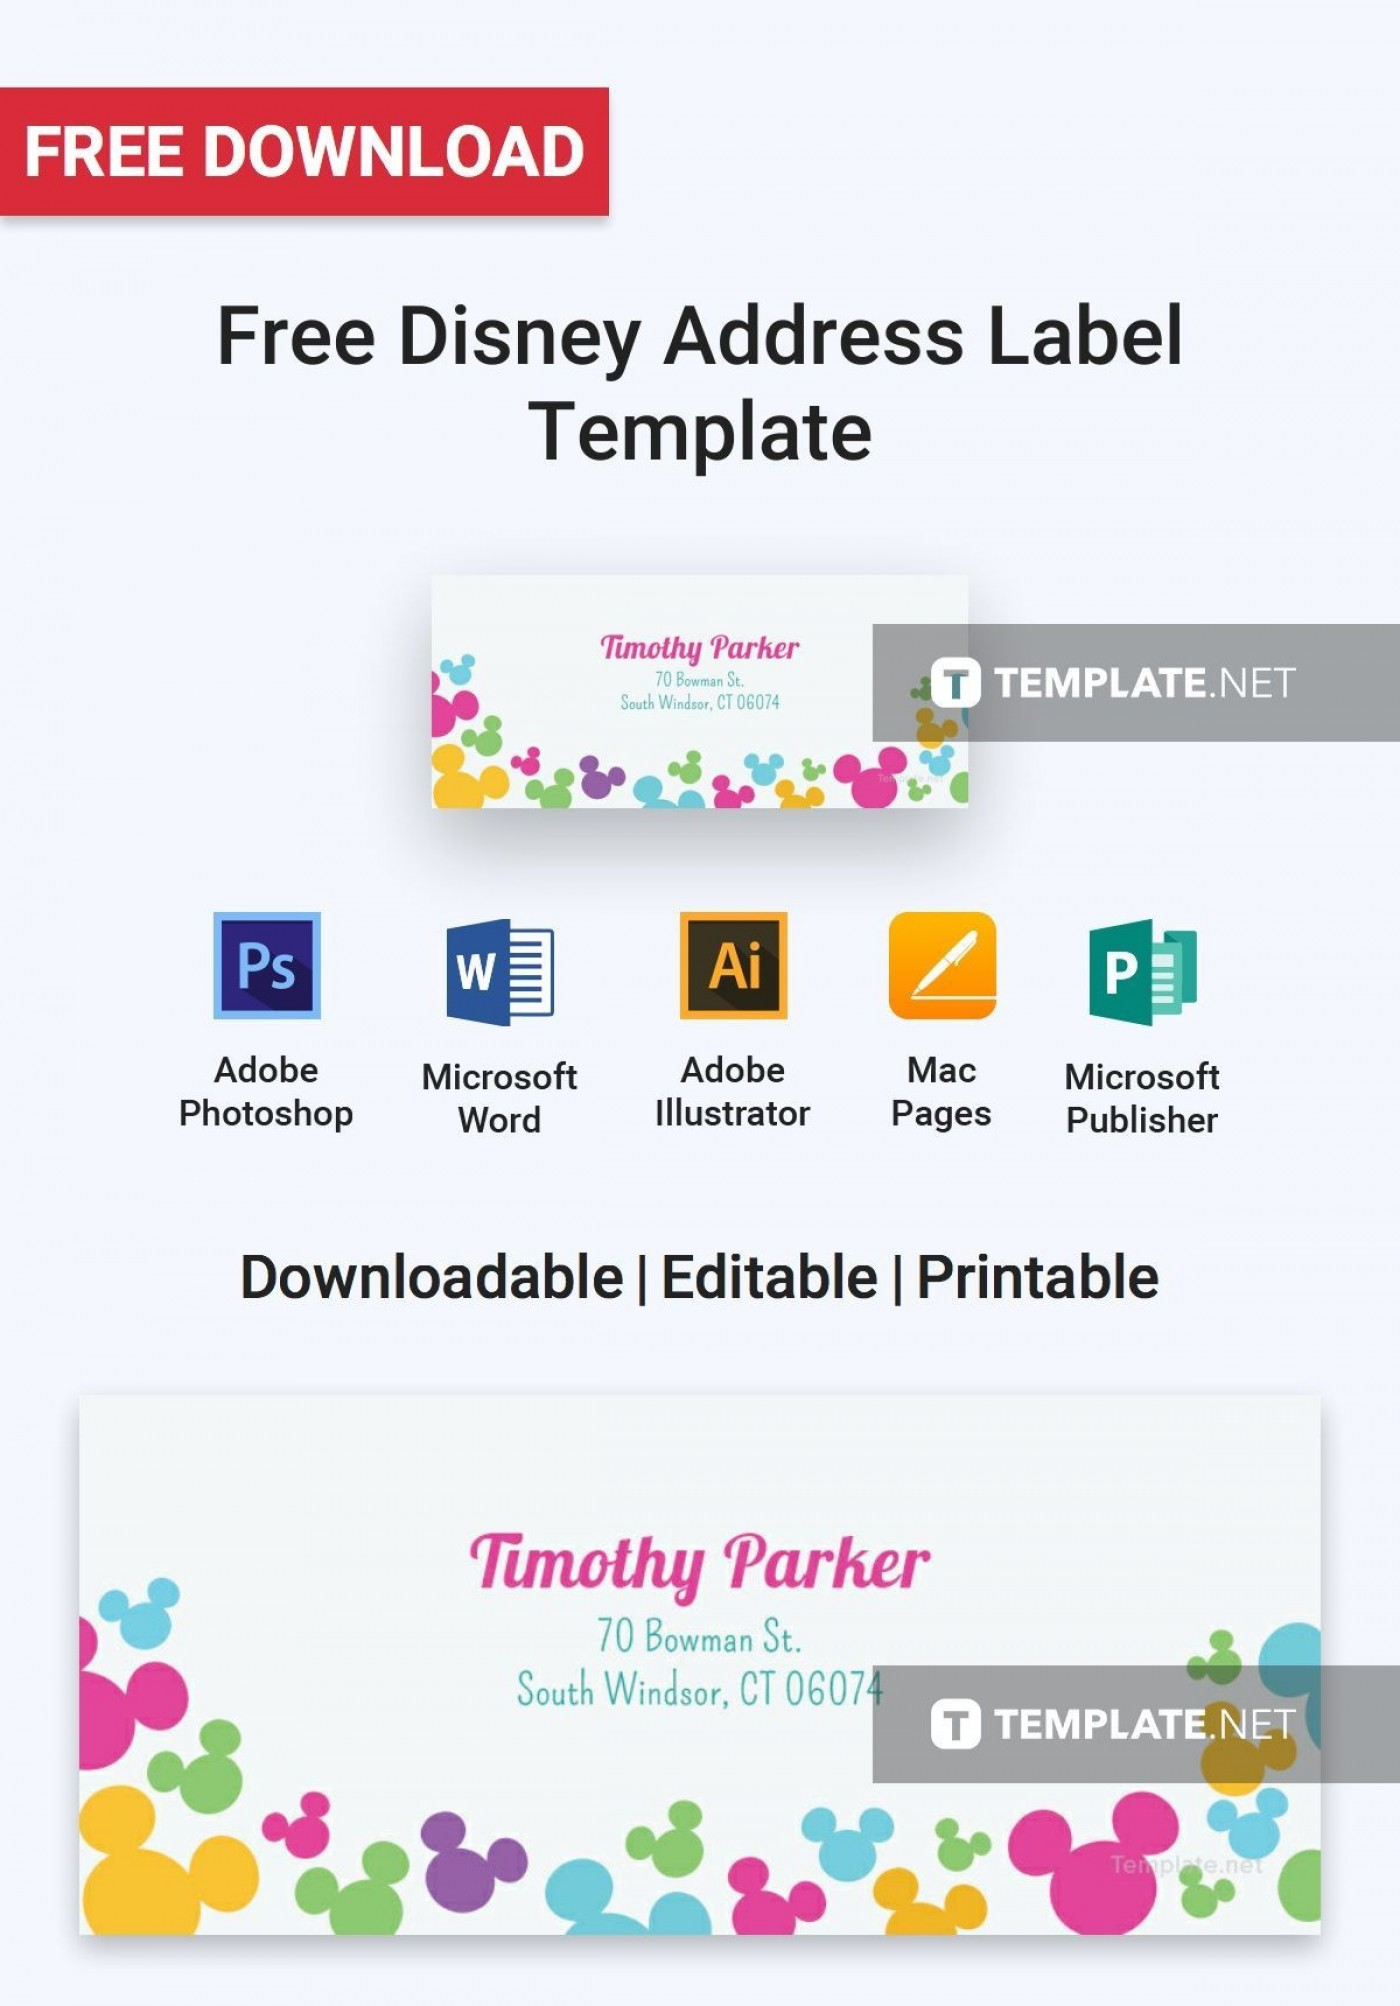 000 Frightening Addres Label Template For Mac Page Idea  Return Avery 51601400